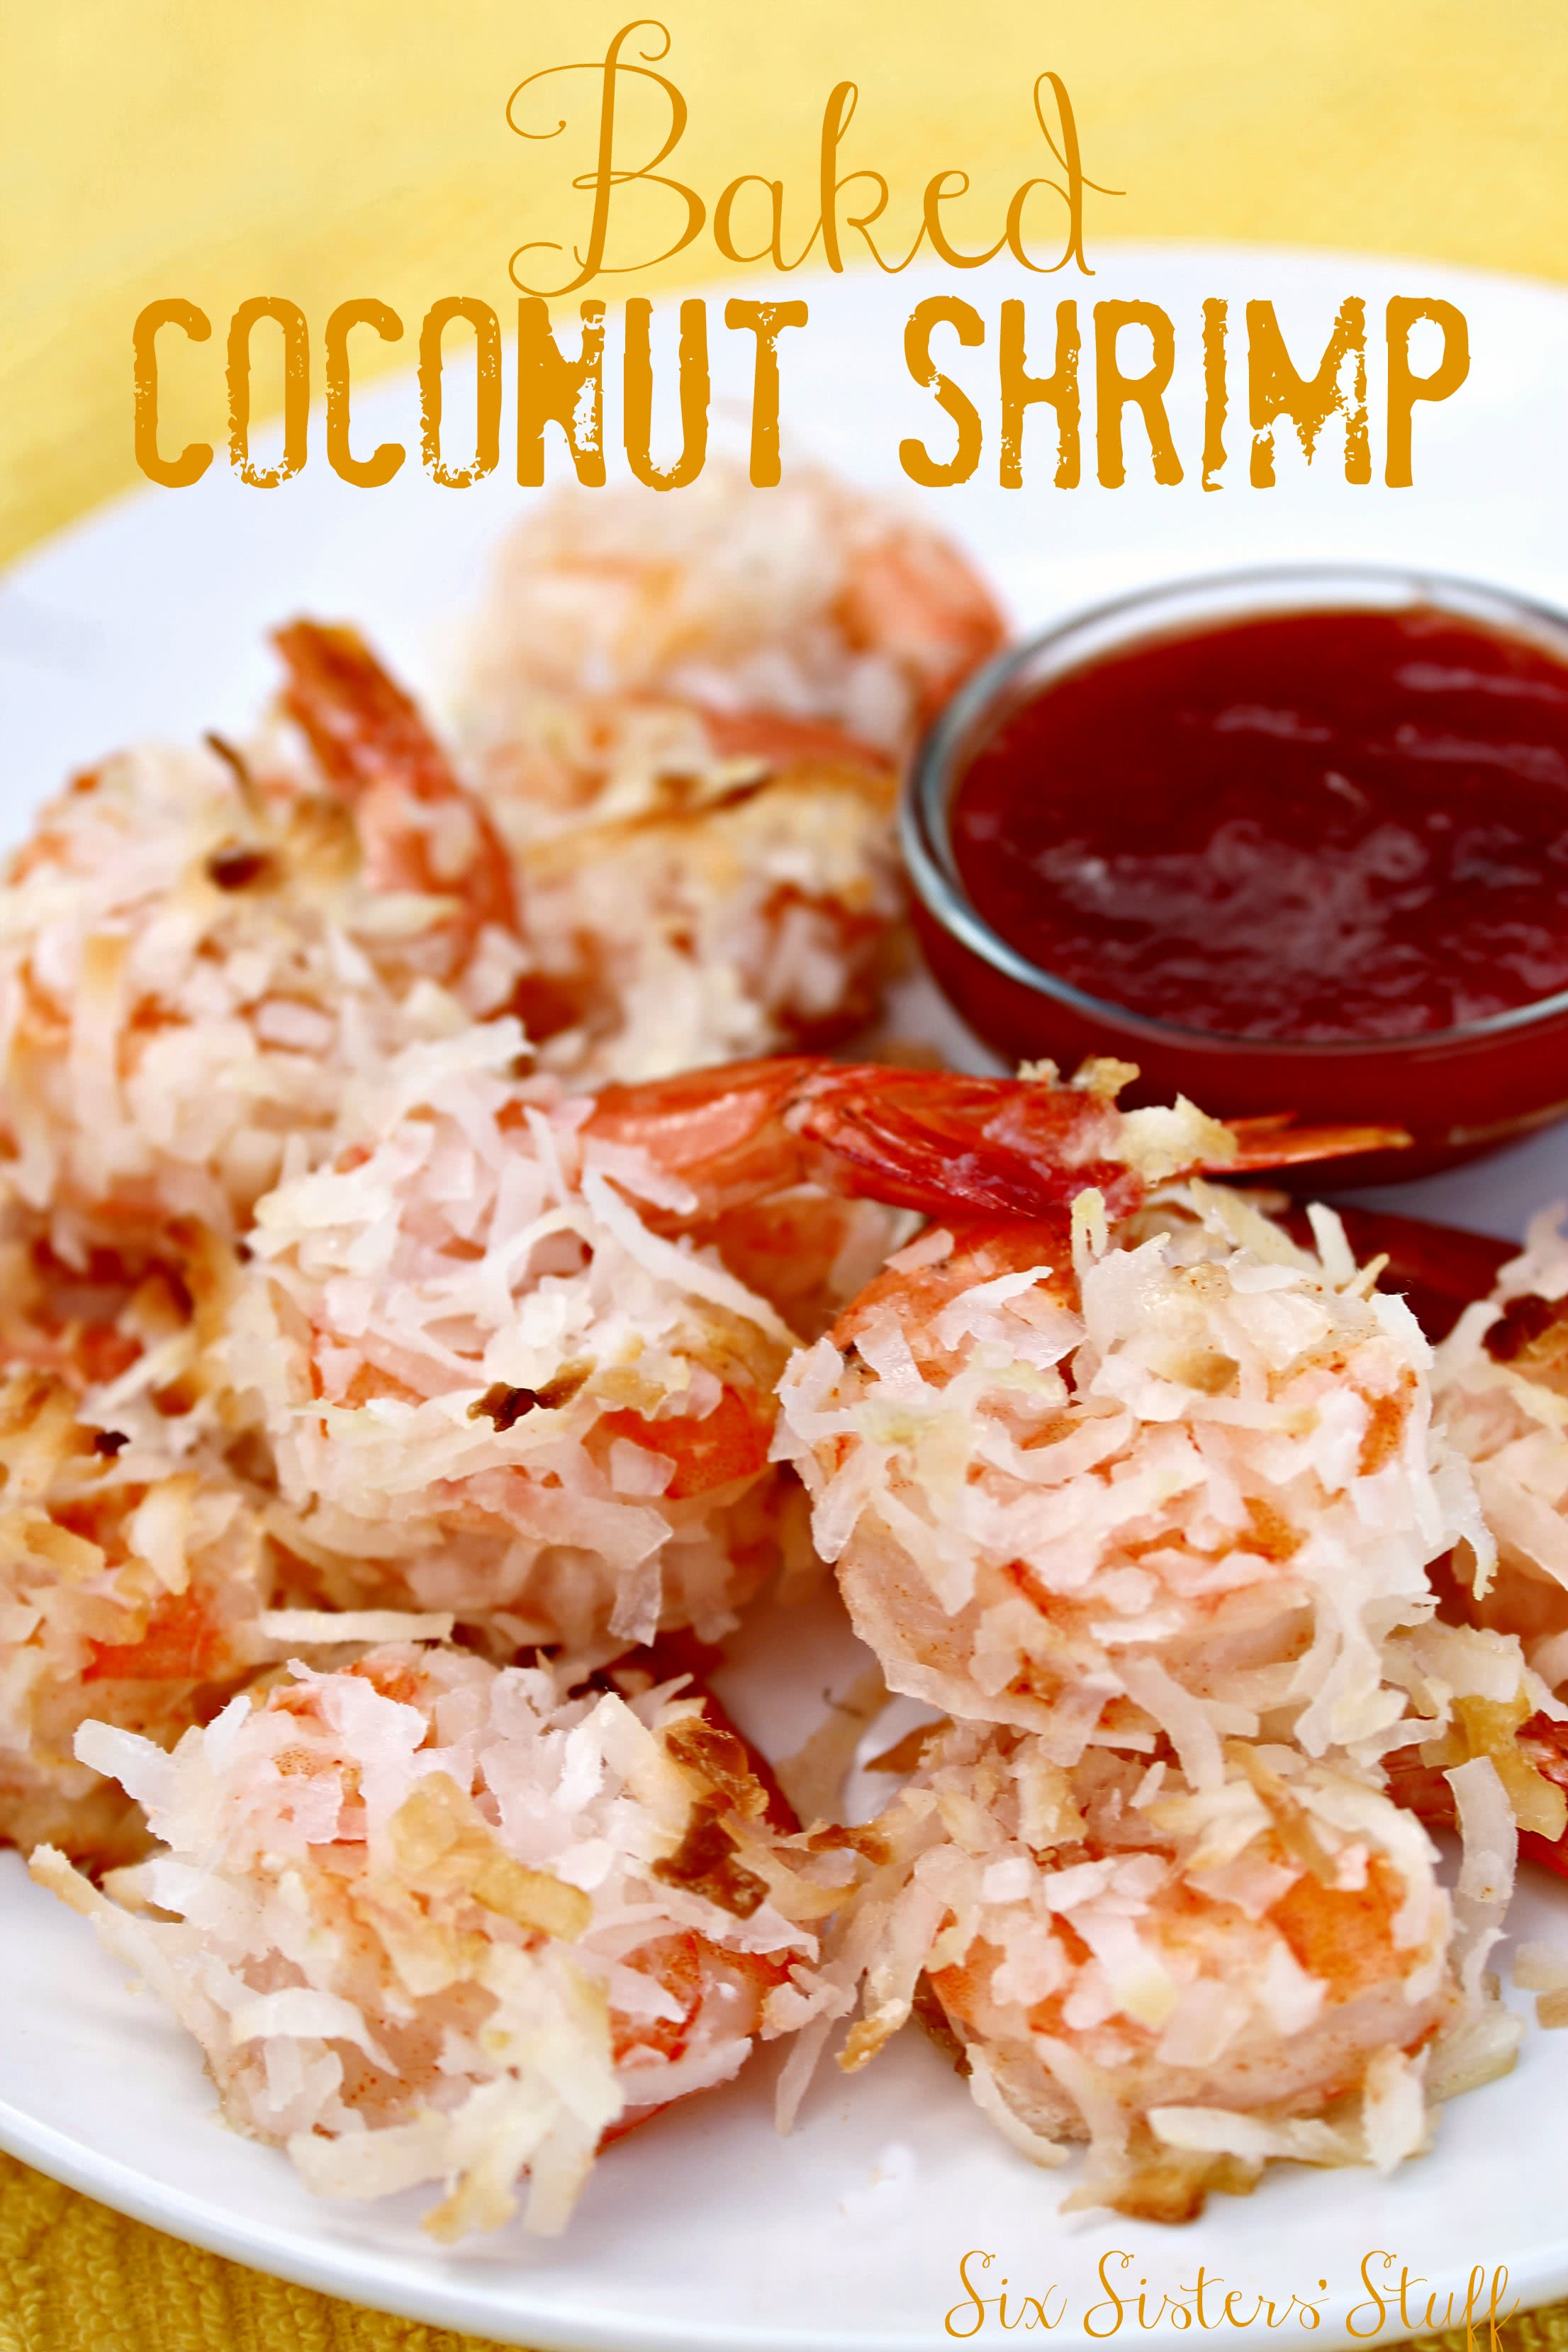 baked-coconut-shrimp